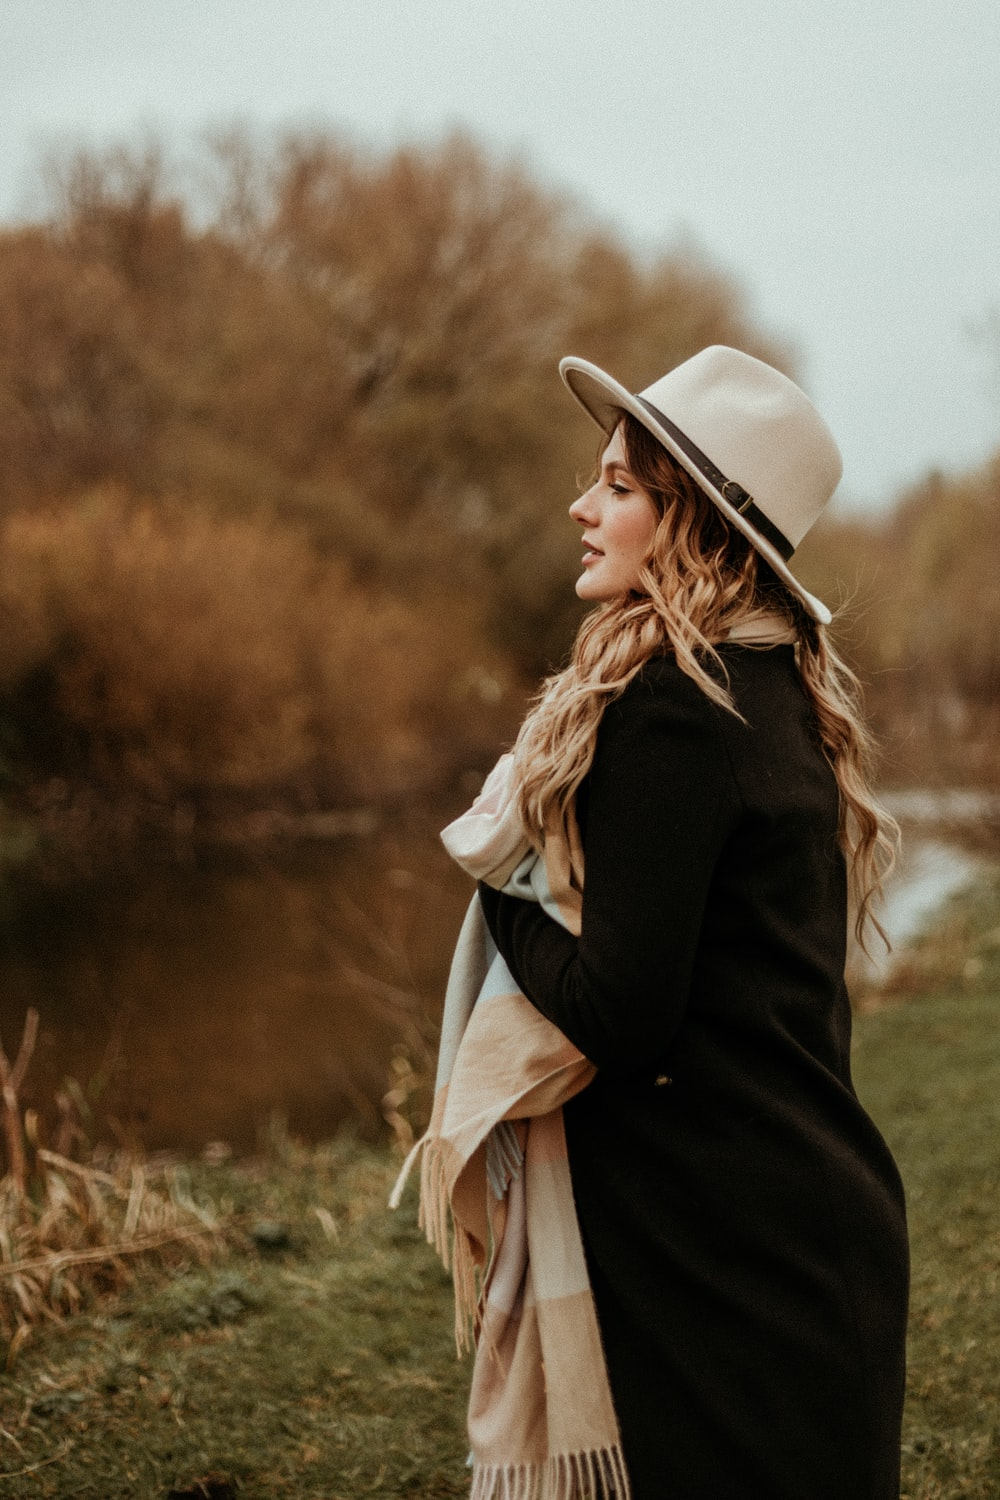 woman in black coat and white sun hat standing on green grass field during daytime